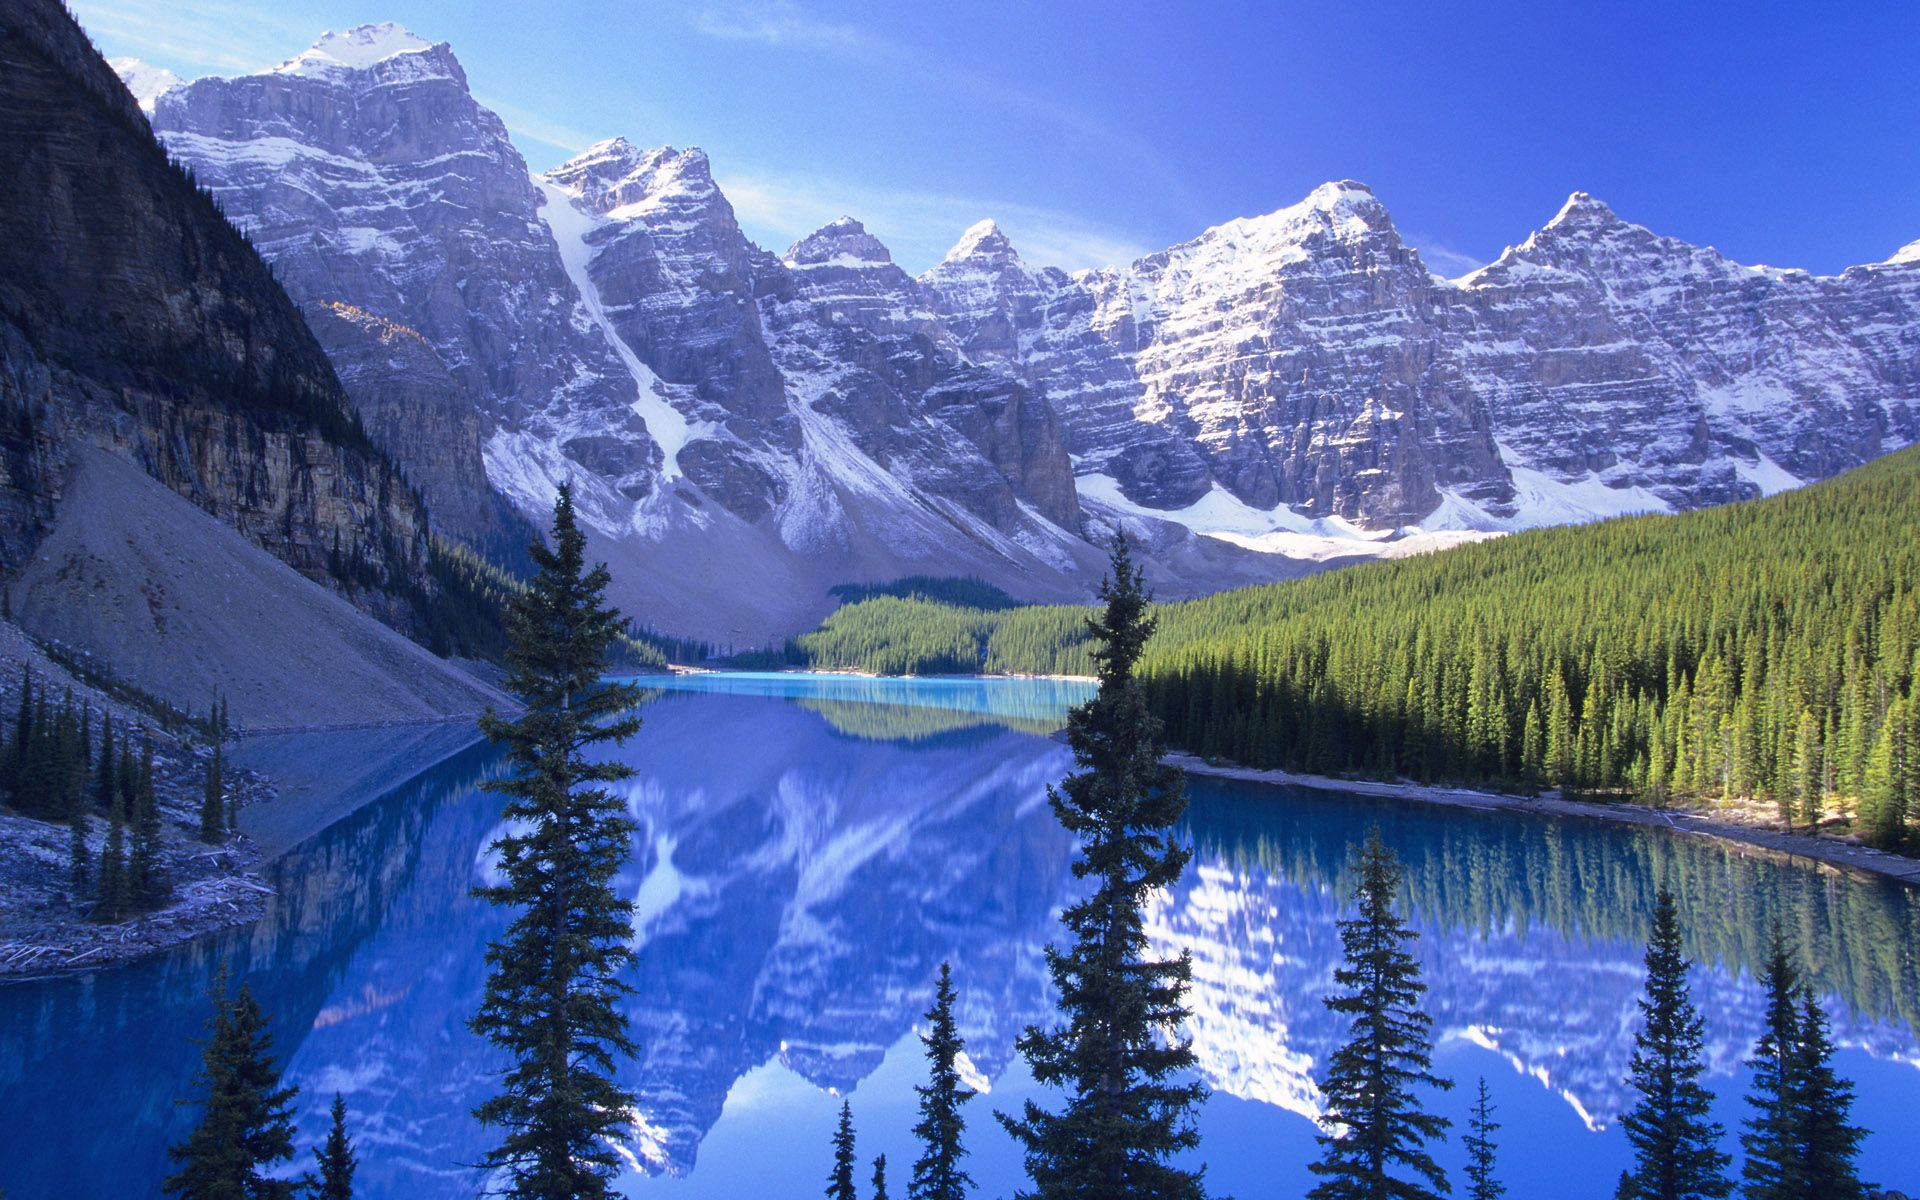 Nature Wallpaper Free Download Canada National Parks Alberta National Parks National Parks